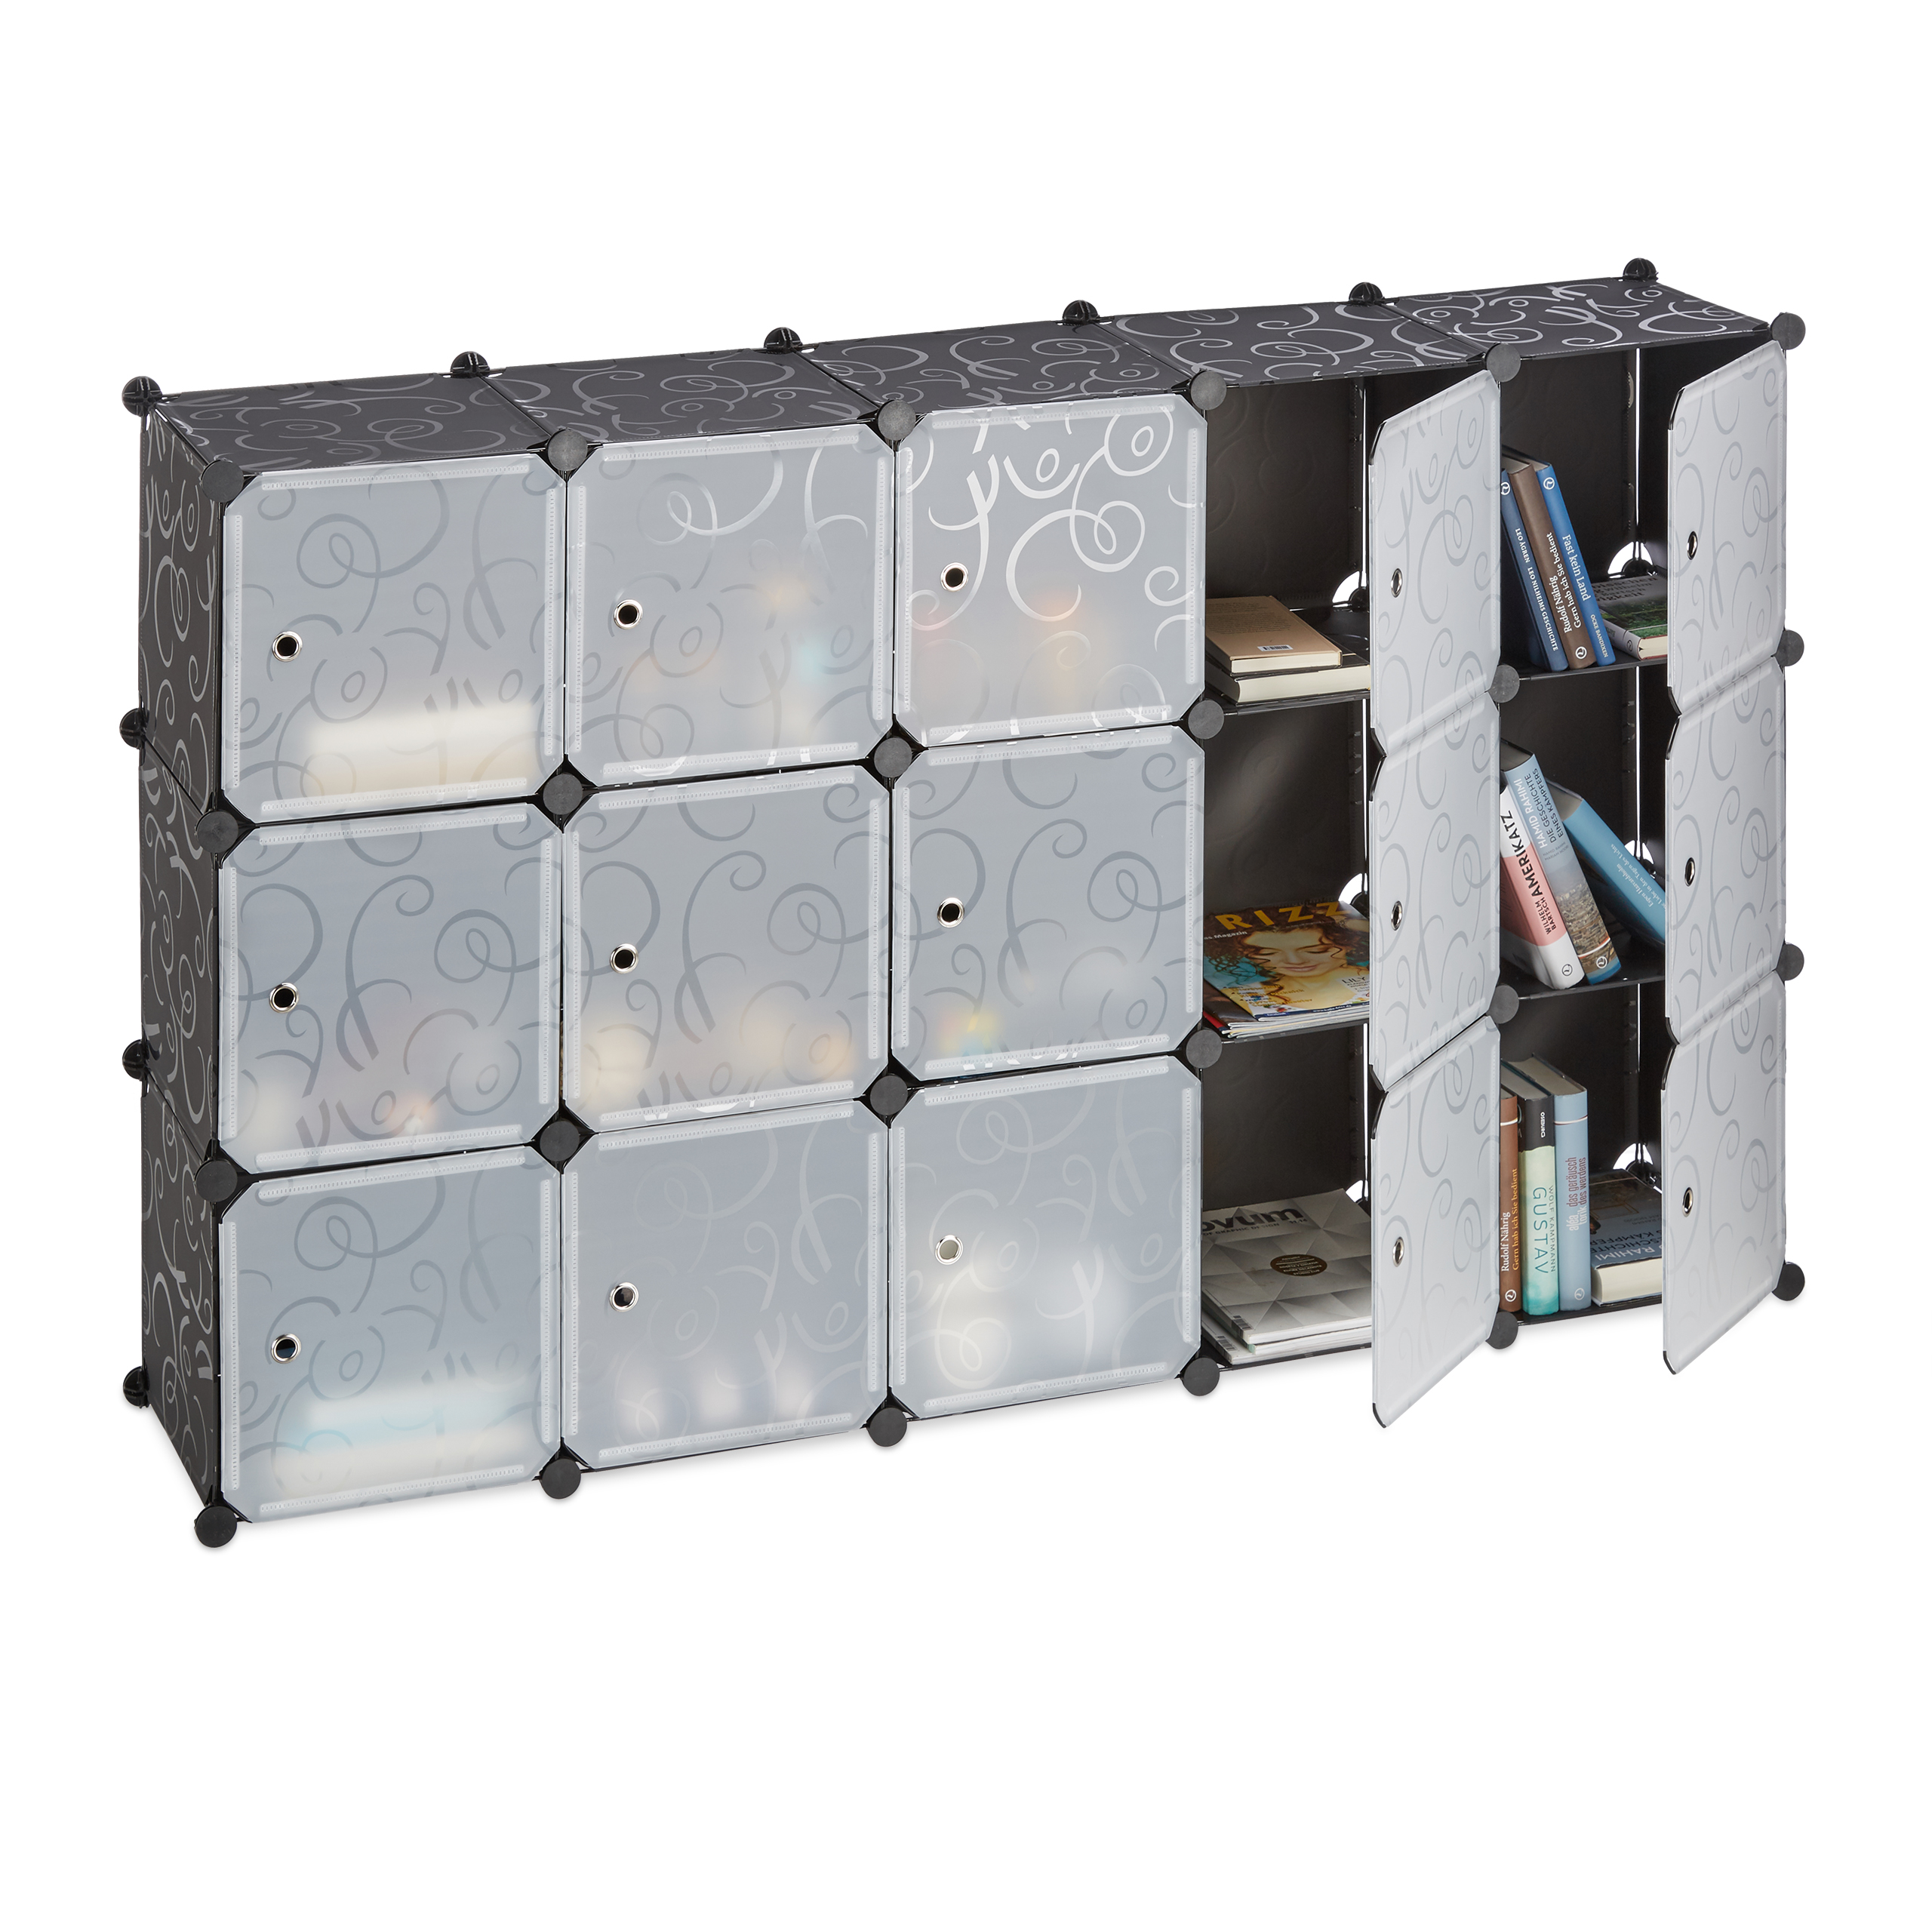 Boltless-Plastic-with-16-Compartments-Shelving-System-DIY-with-doors-Plastic-Cabinet thumbnail 4